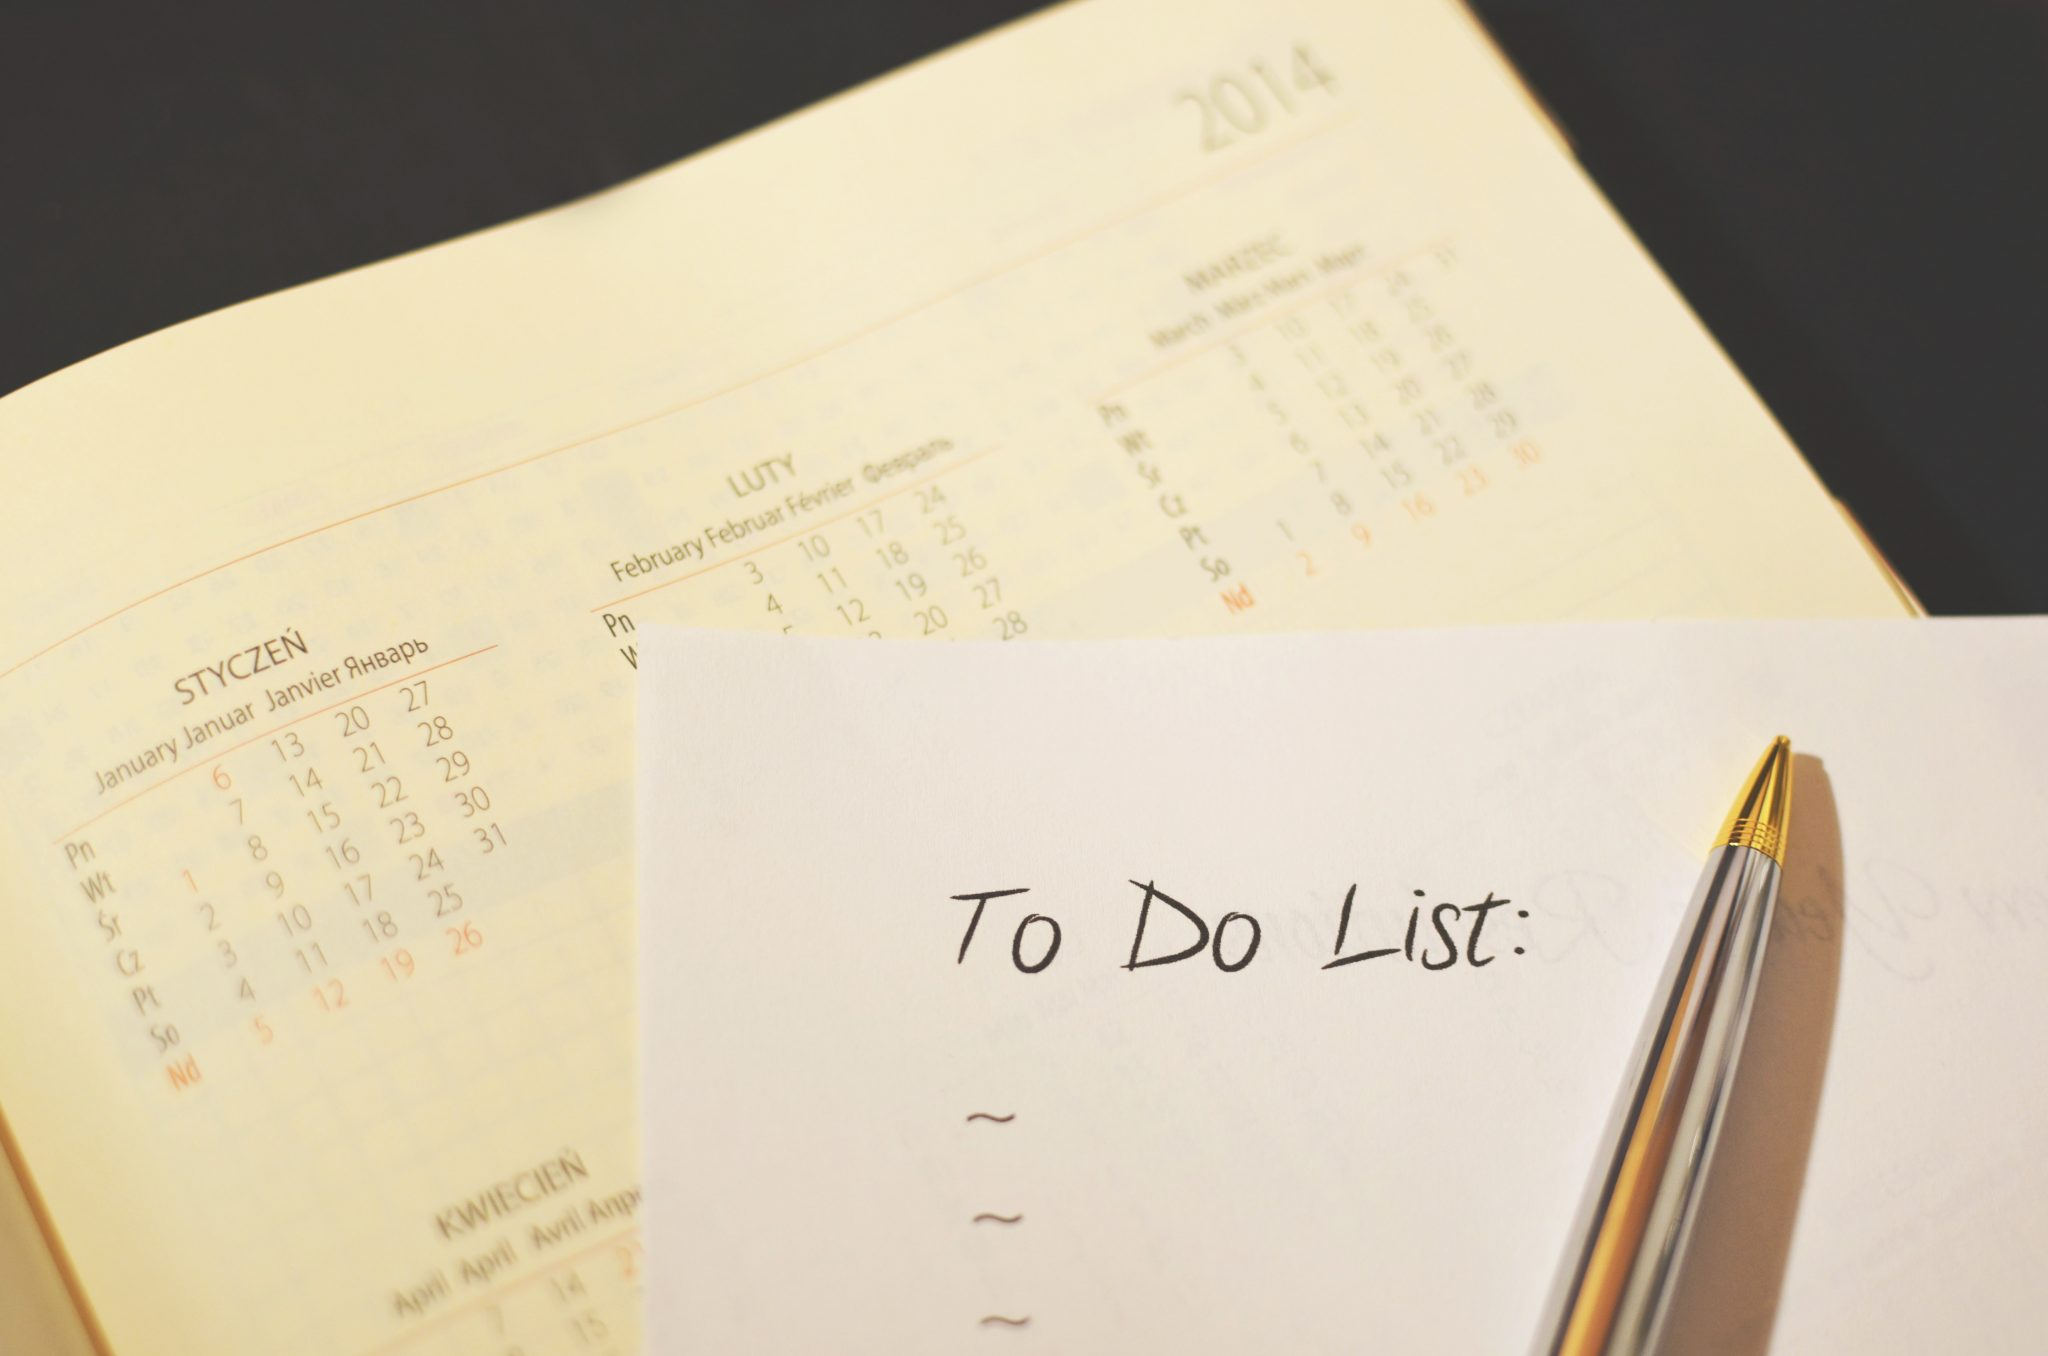 A simple to do list can be very helpful when it comes to simple projects and production.